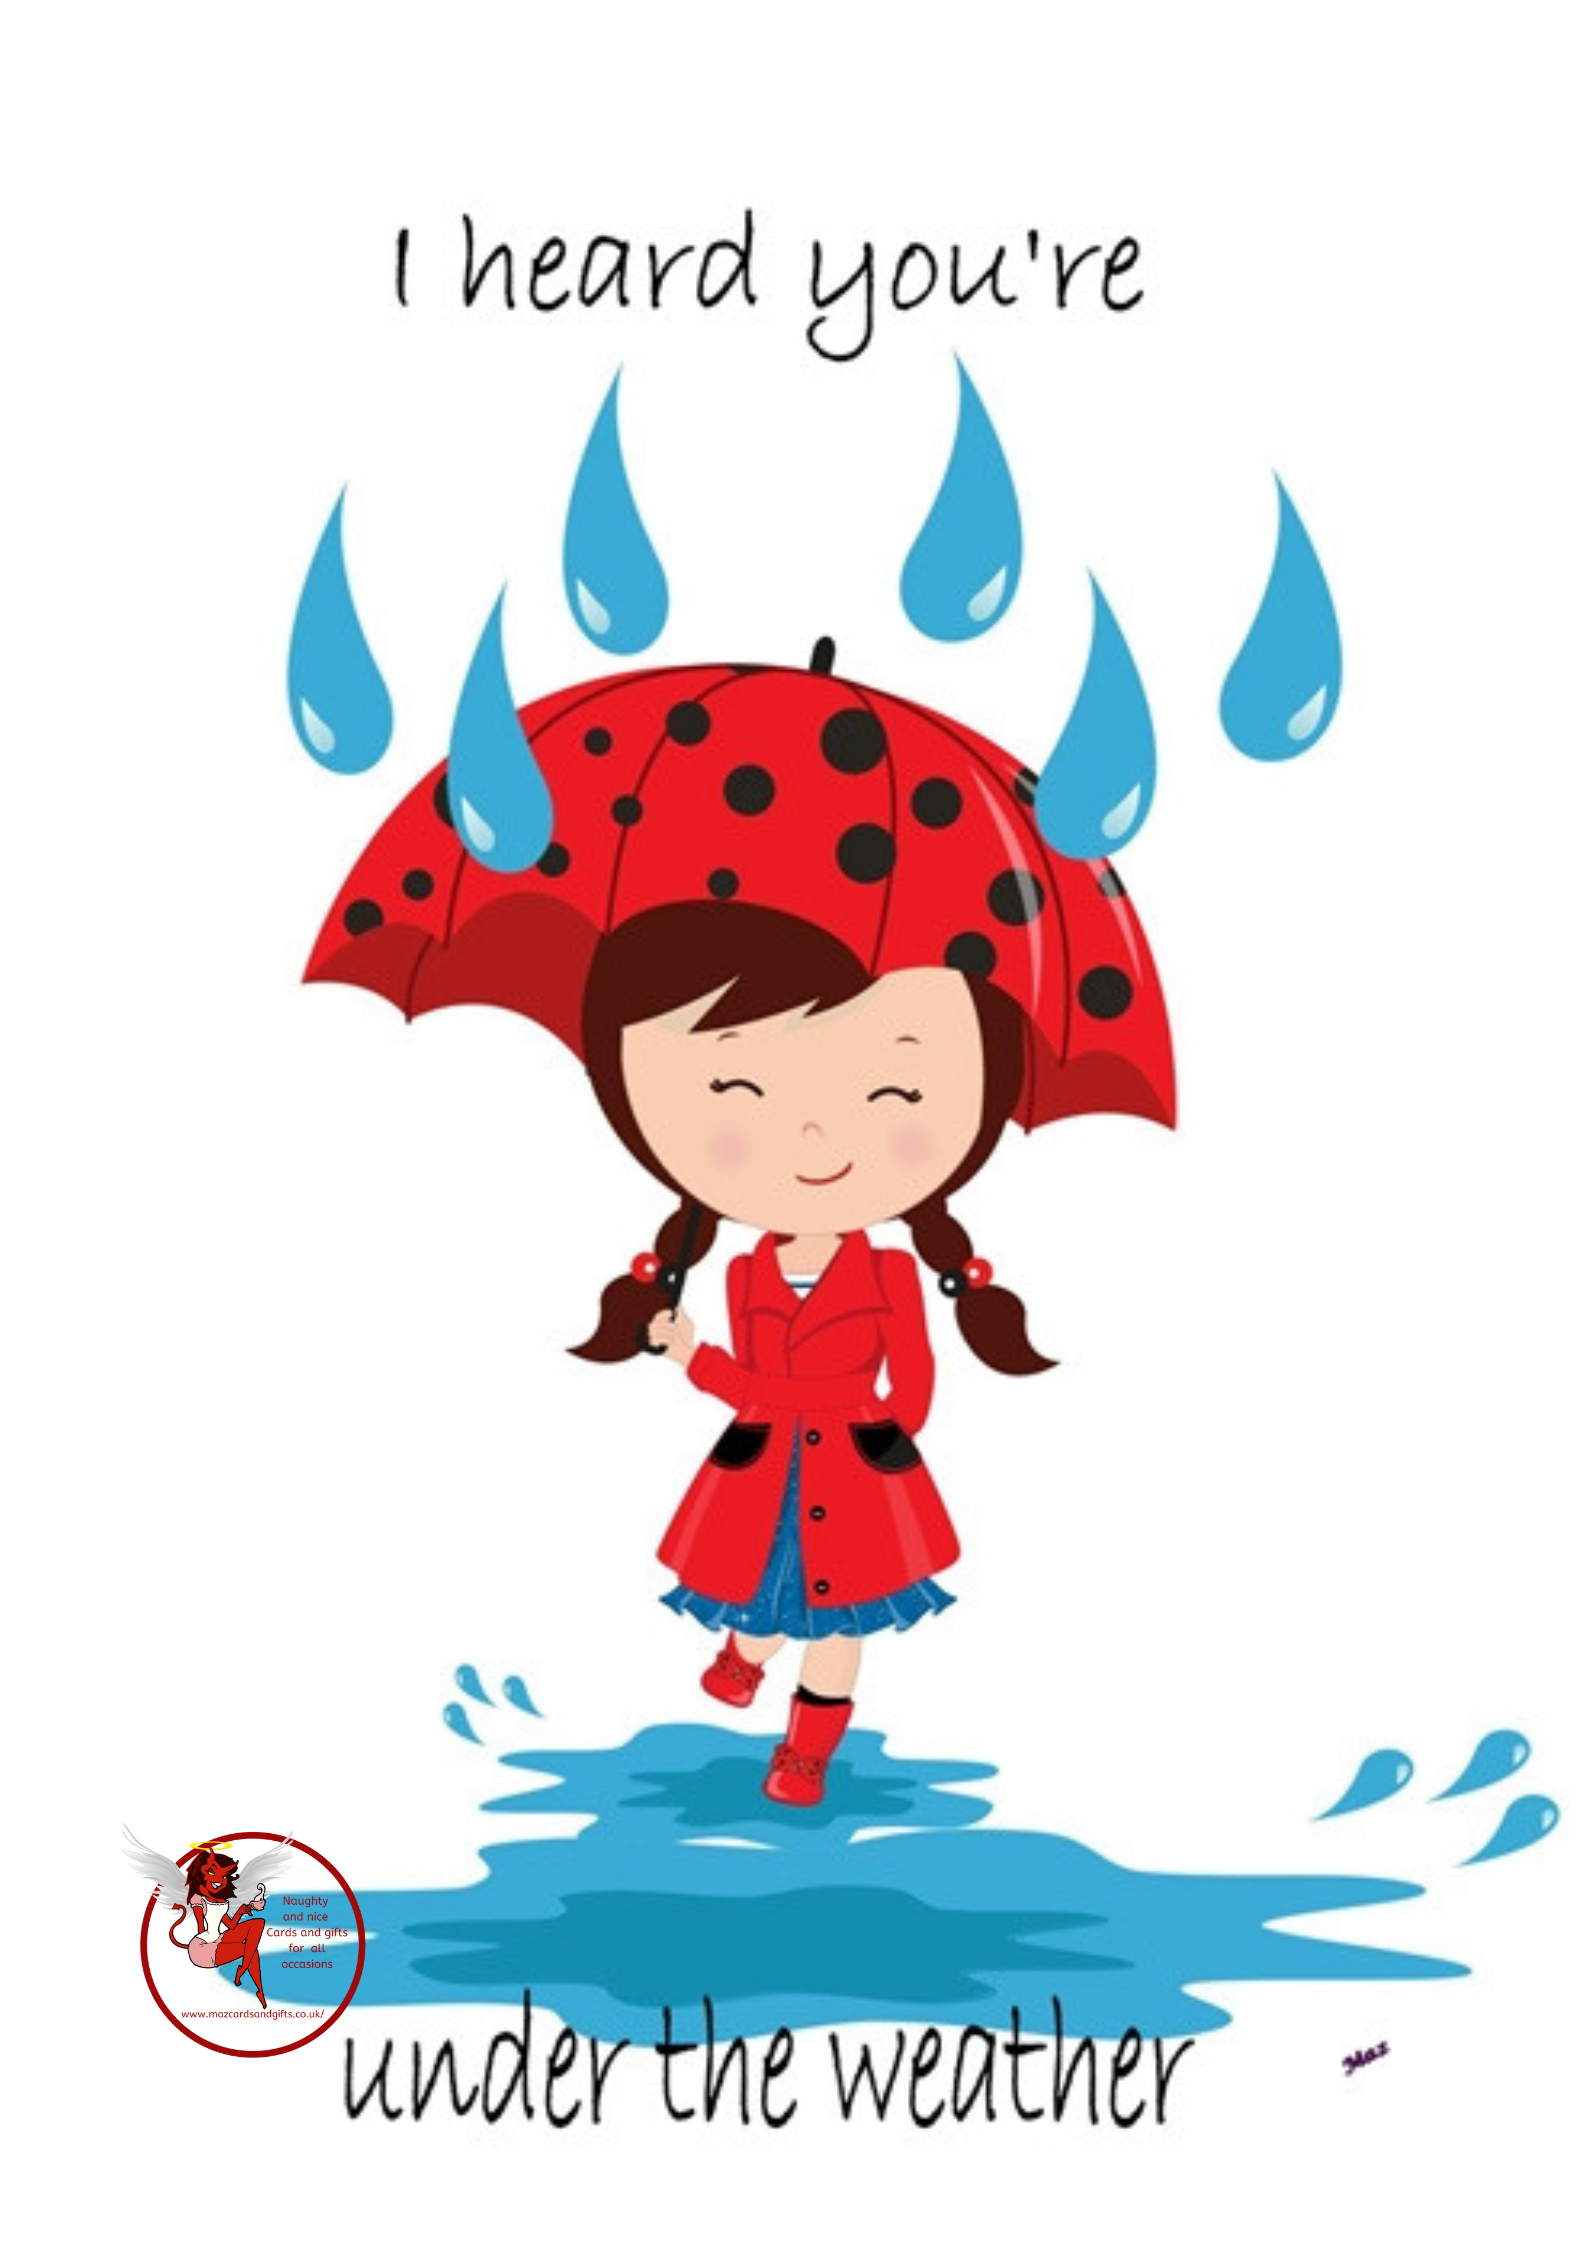 Get well - Girl with brolly - Order No 067